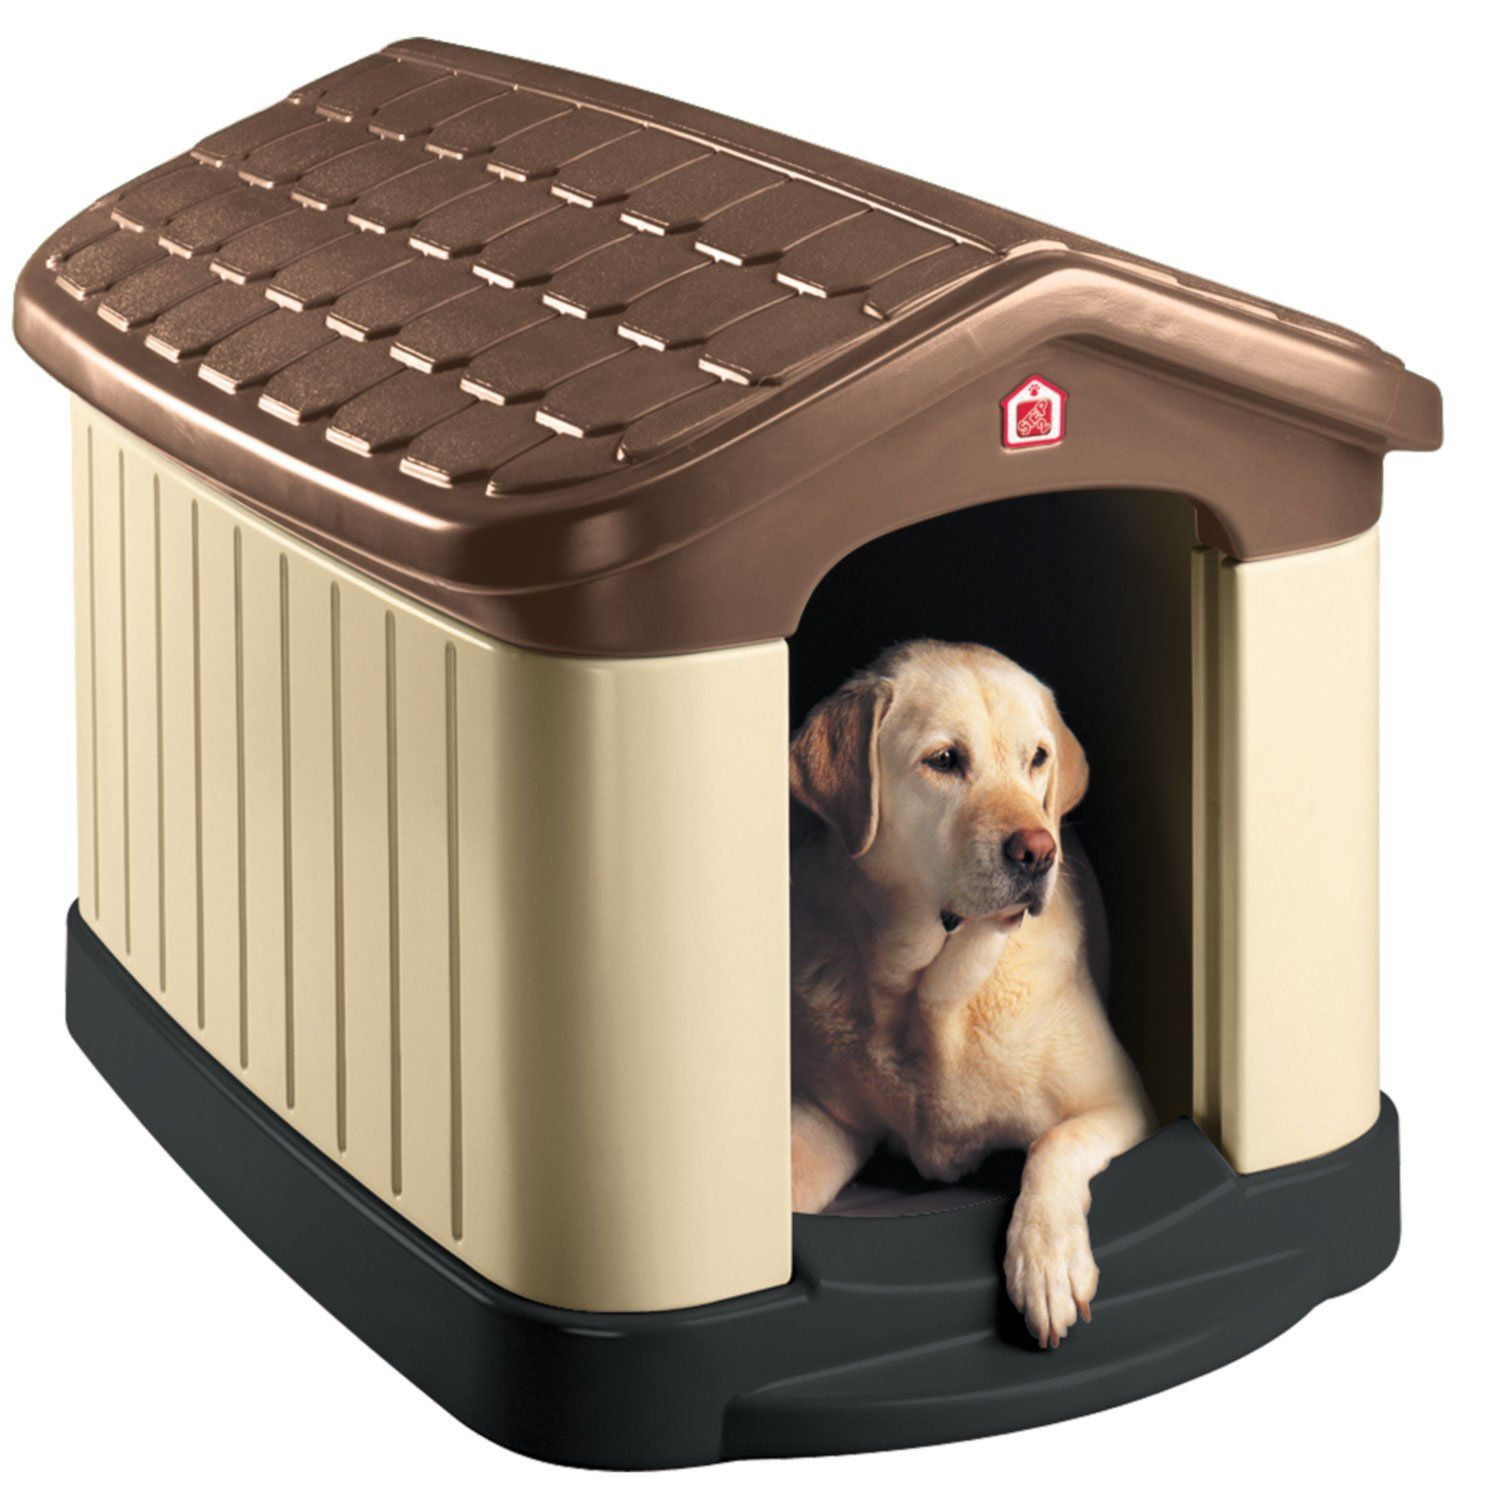 Our Pet S Tuff N Rugged Dog House Large Plastic Dog House